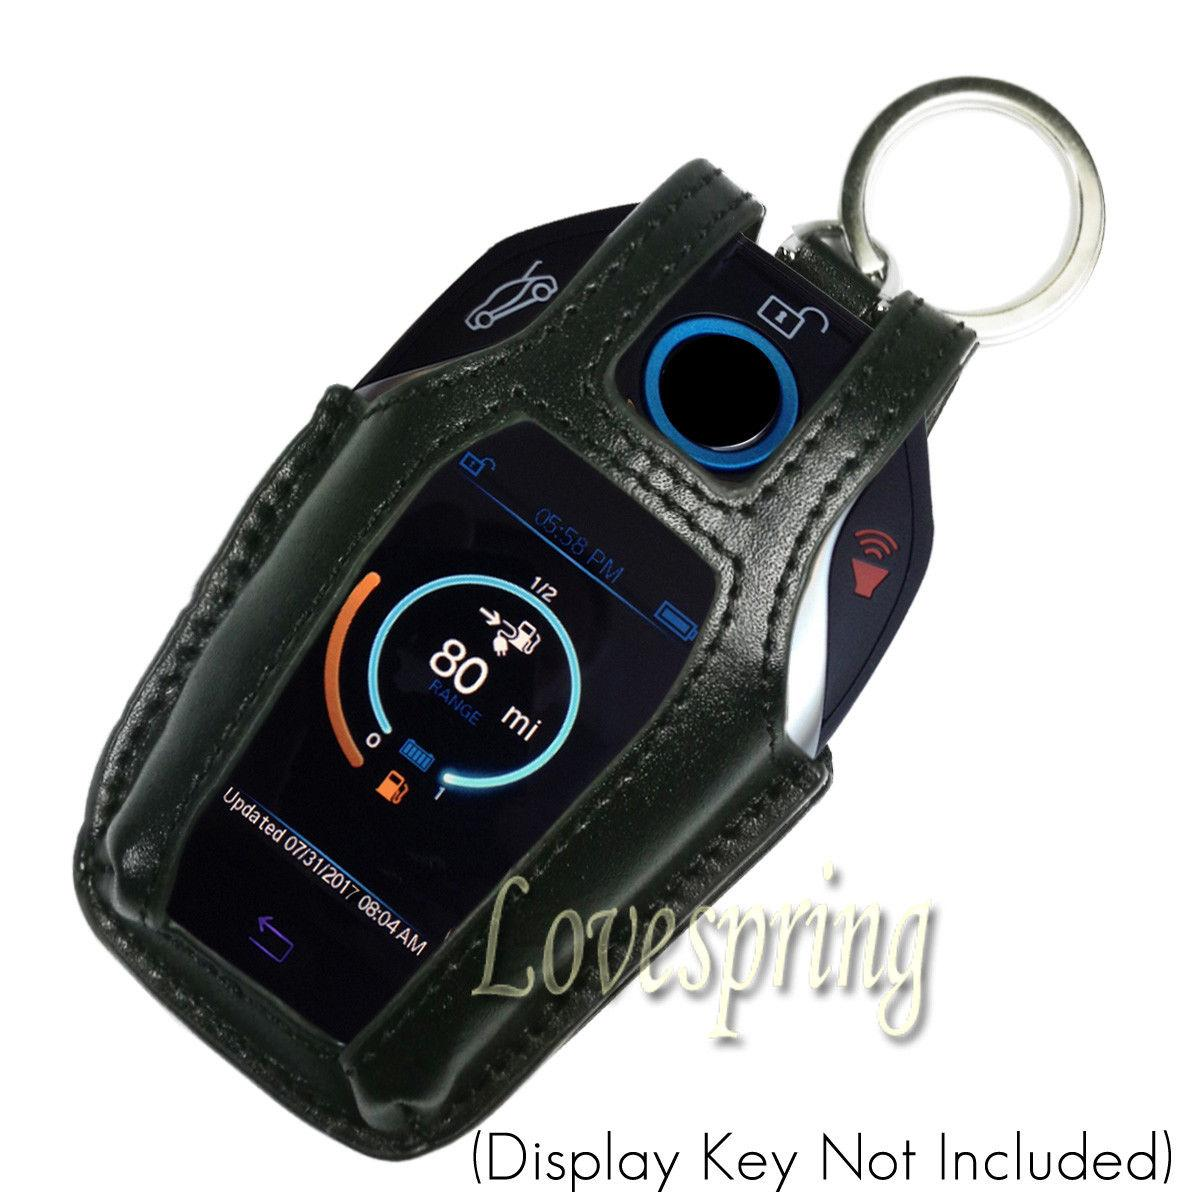 Leather Remote Key Fob Cover Case Protector Holder For BMW 2016 2017 7 Series G11 G12 Led Player